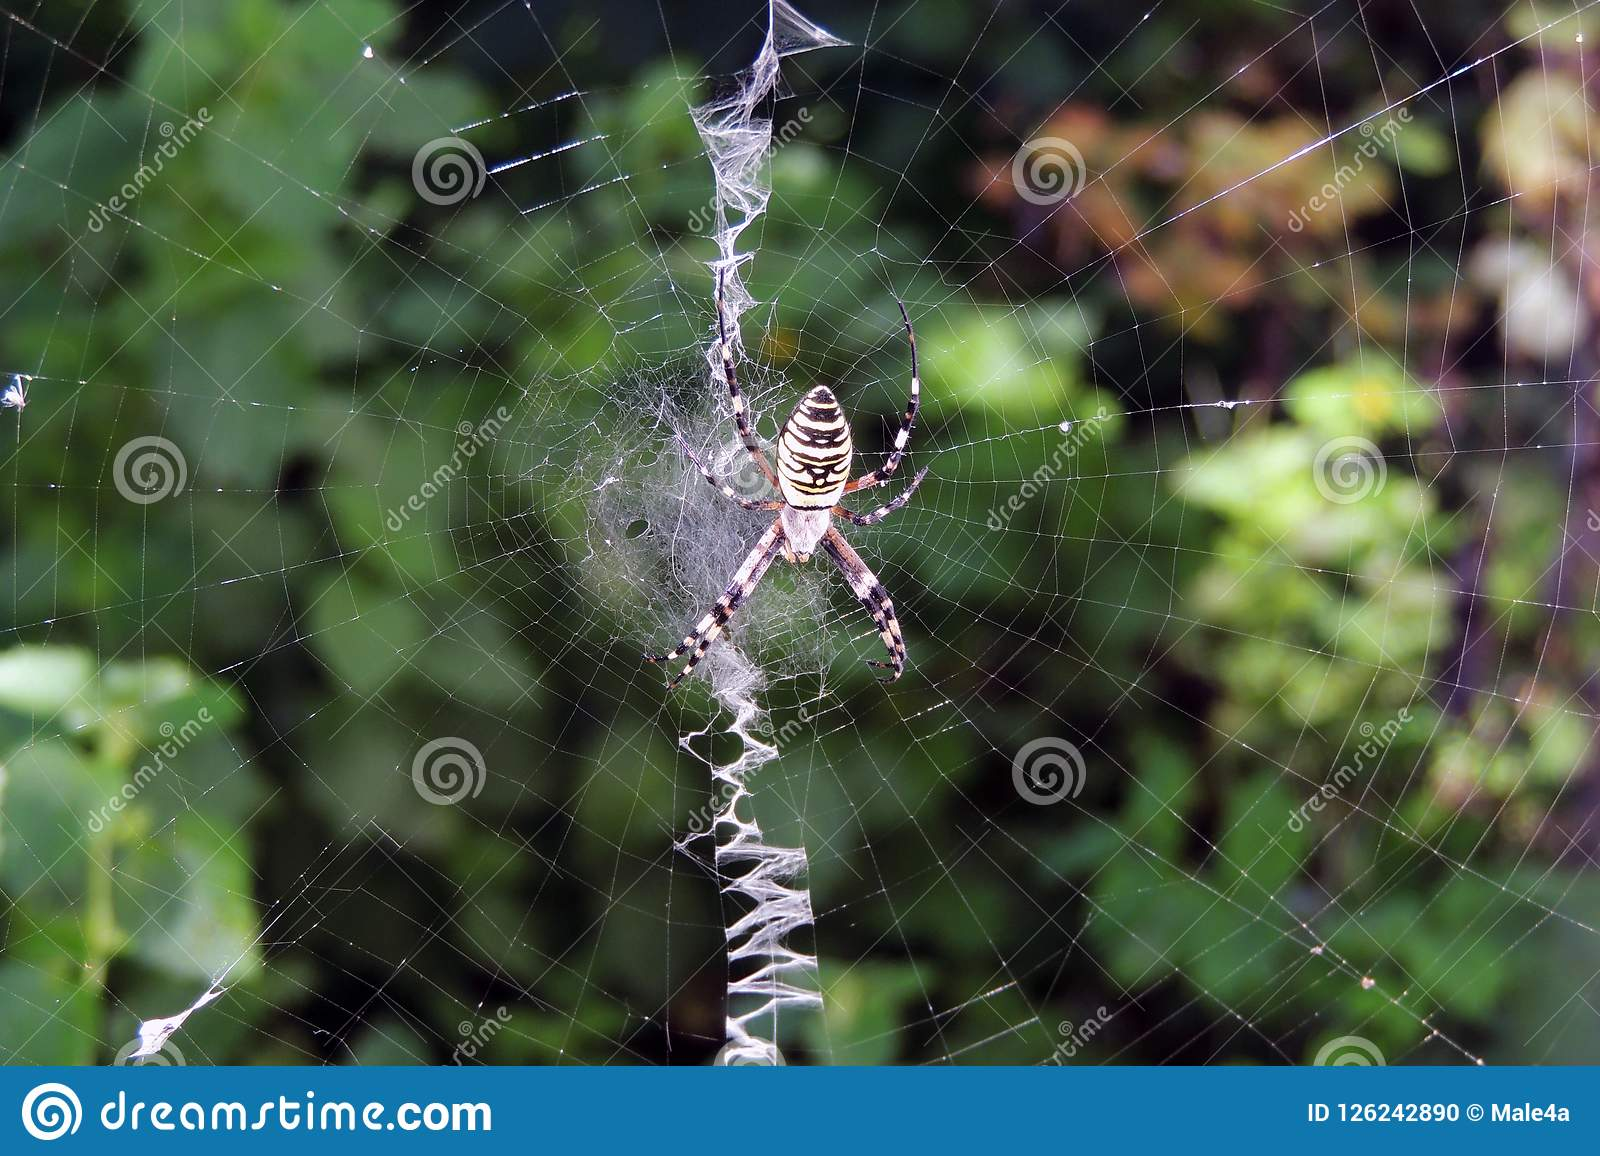 A Poisonous Spider On A Cobweb Stock Photo Image Of Danger